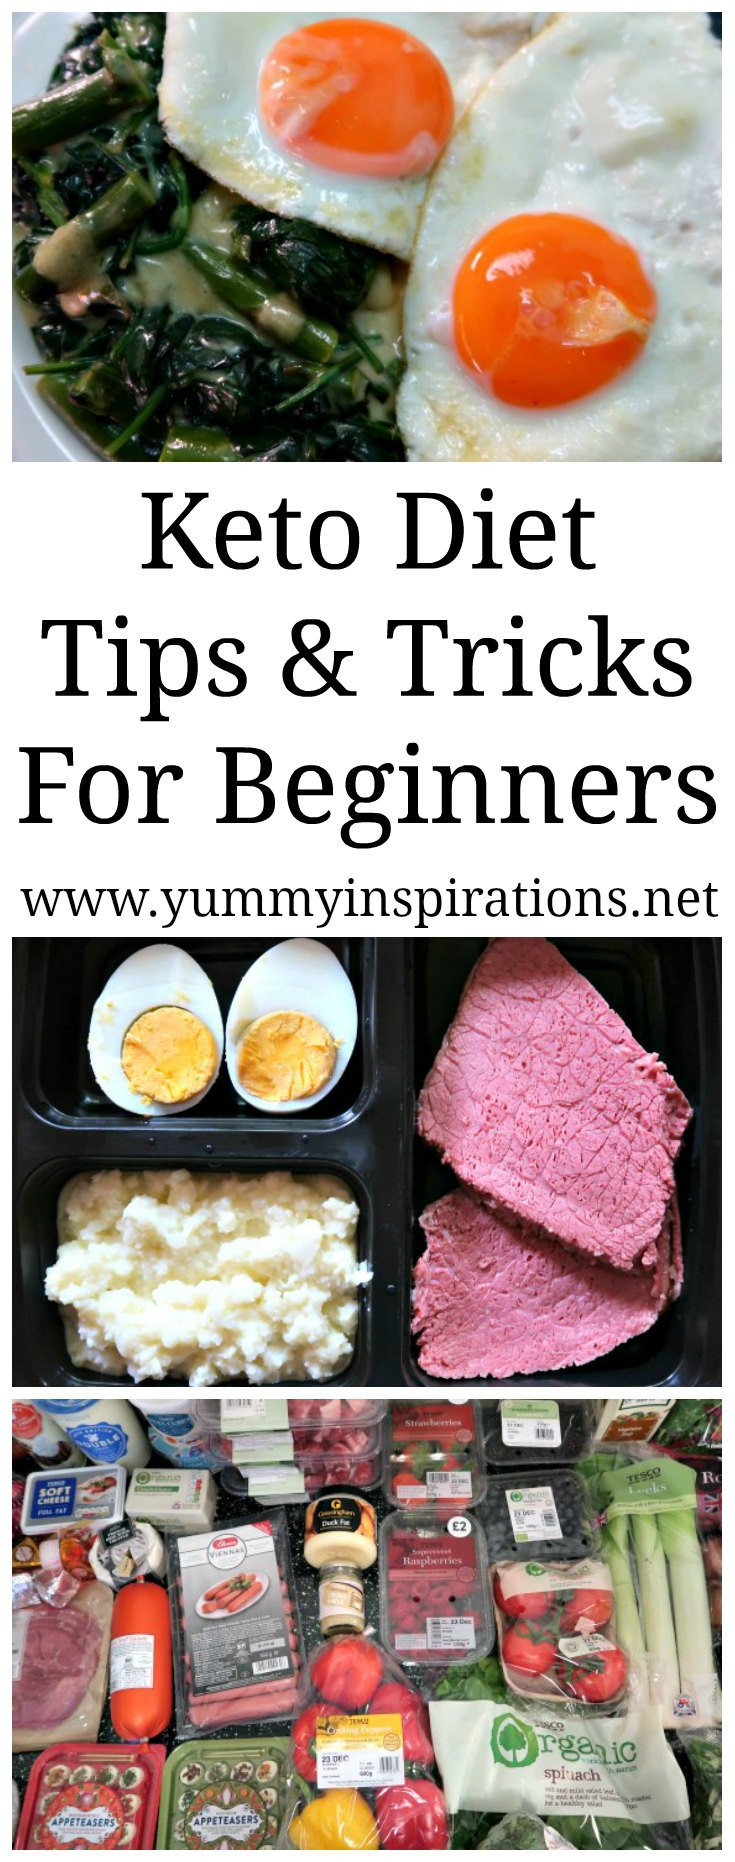 Keto Diet Recipes Free  Keto Tips For Beginners Tips and Tricks for Ketogenic